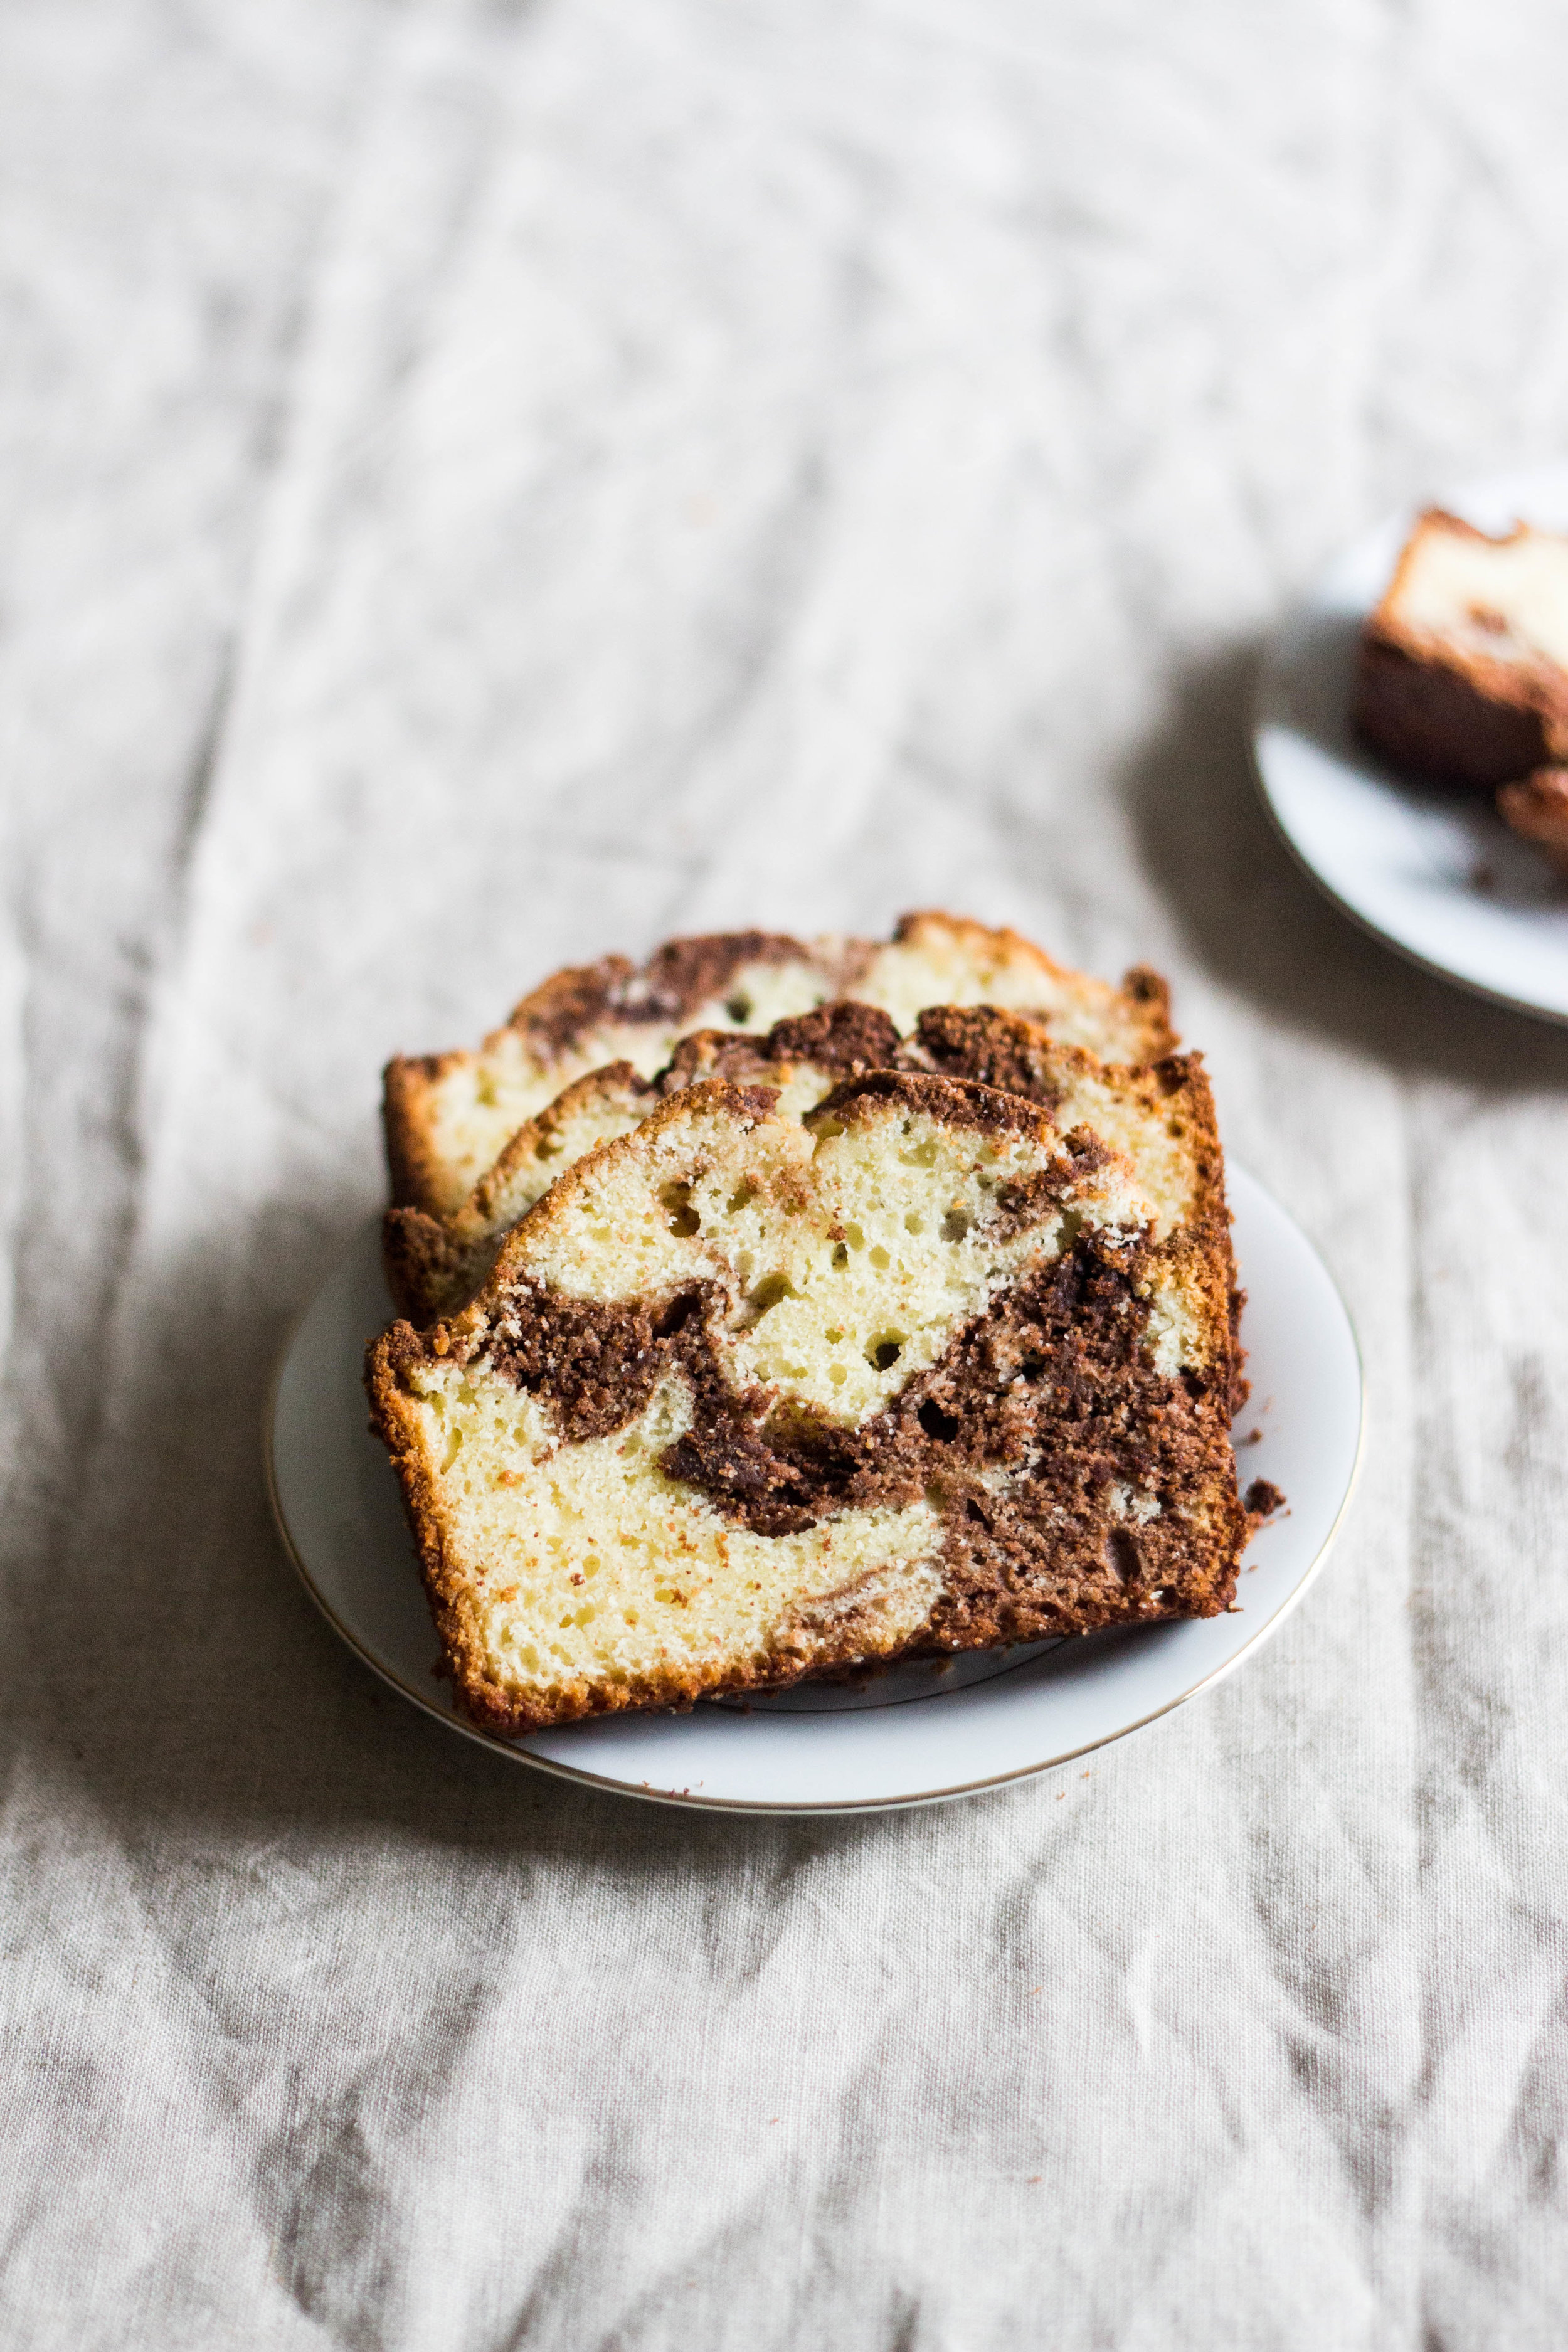 chocolate vanillamarble loaf cake - from Pretty. Simple. Sweet.makes one loaf cake1¾ cups all-purpose flour1½ teaspoons baking powder½ teaspoon salt¾ cup unsalted butter, at room temp1¼ cups granulated sugar3 large eggs, at room temp1 teaspoon pure vanilla extract2/3 cup whole milk, buttermilk, or sour cream4 oz bittersweet or semisweet chocolate, melted*